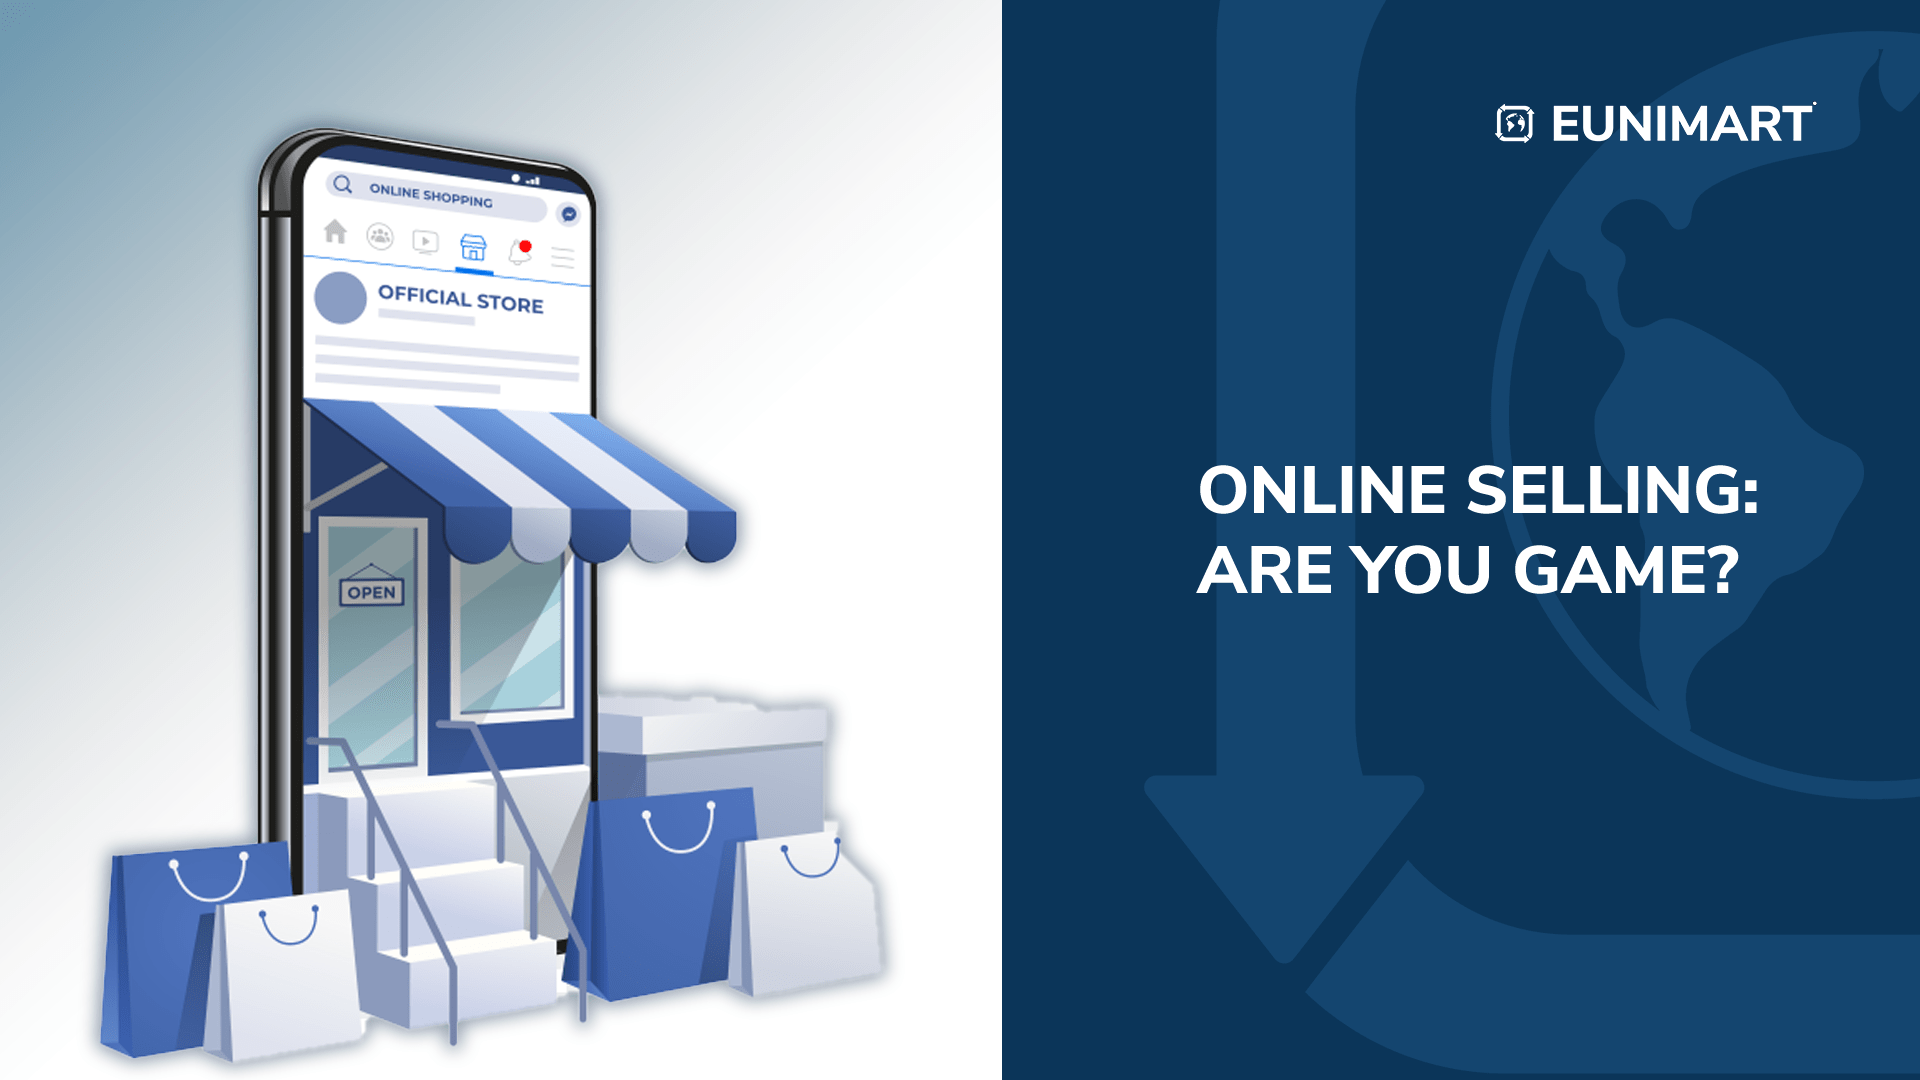 Online selling: Are You Game?